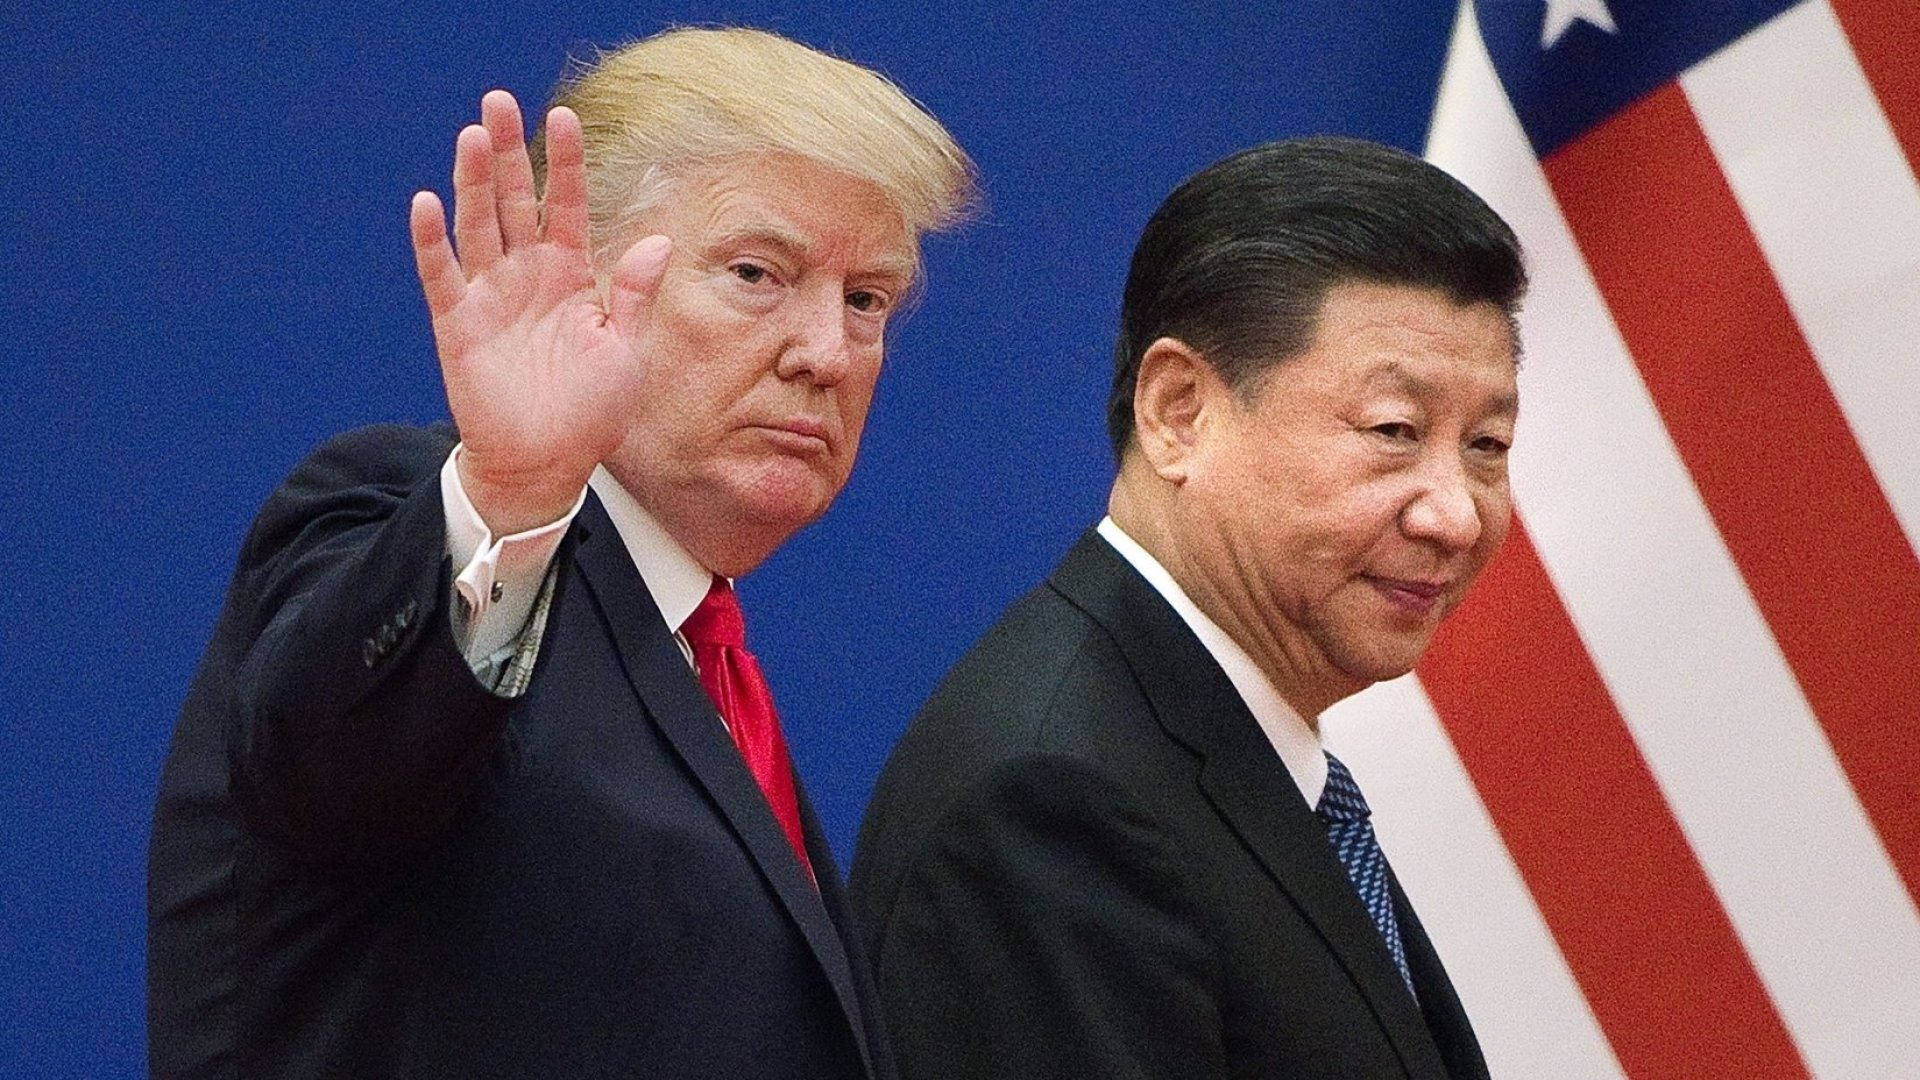 U.S. president Donald Trump (left) and Chinese president Xi Jinping leave a business leaders event at the Great Hall of the People in Beijing on November 9, 2017.